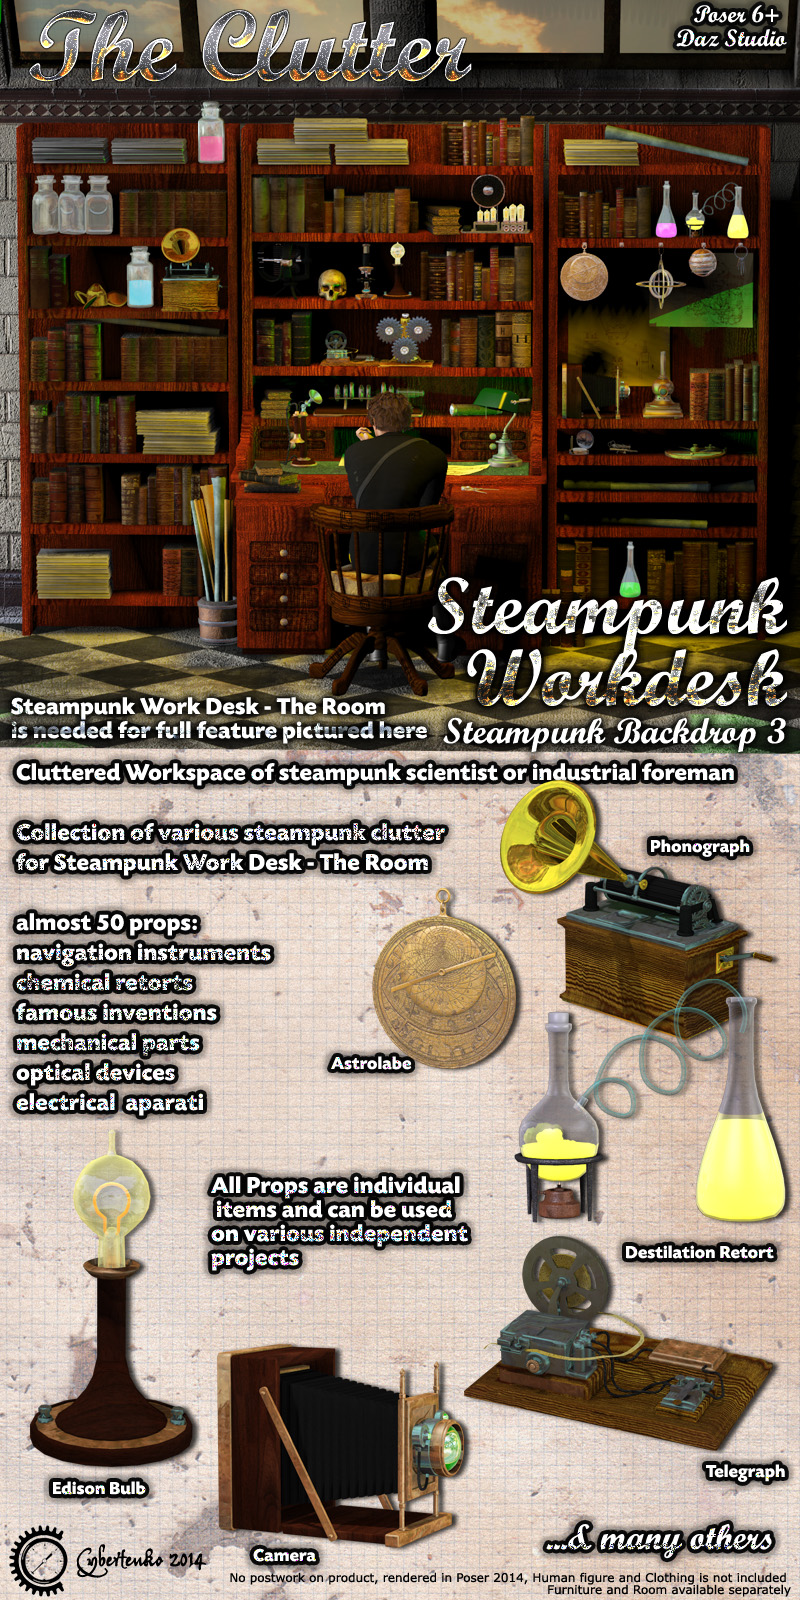 Steampunk Work Desk - The Clutter